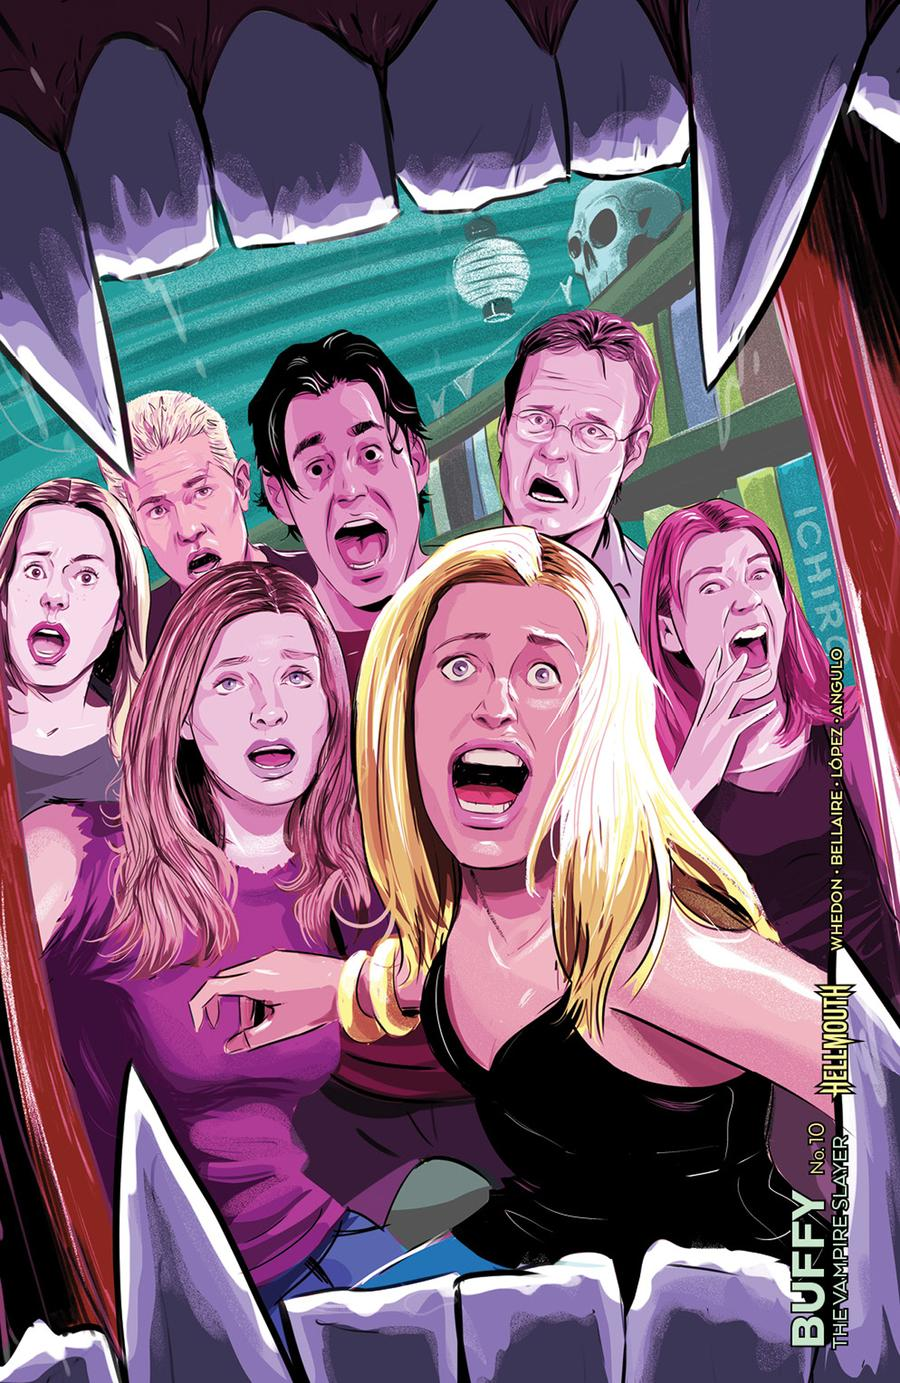 Buffy The Vampire Slayer Vol 2 #10 Cover D Variant Ryan Inzana Preorder Cover (Hellmouth Tie-In)